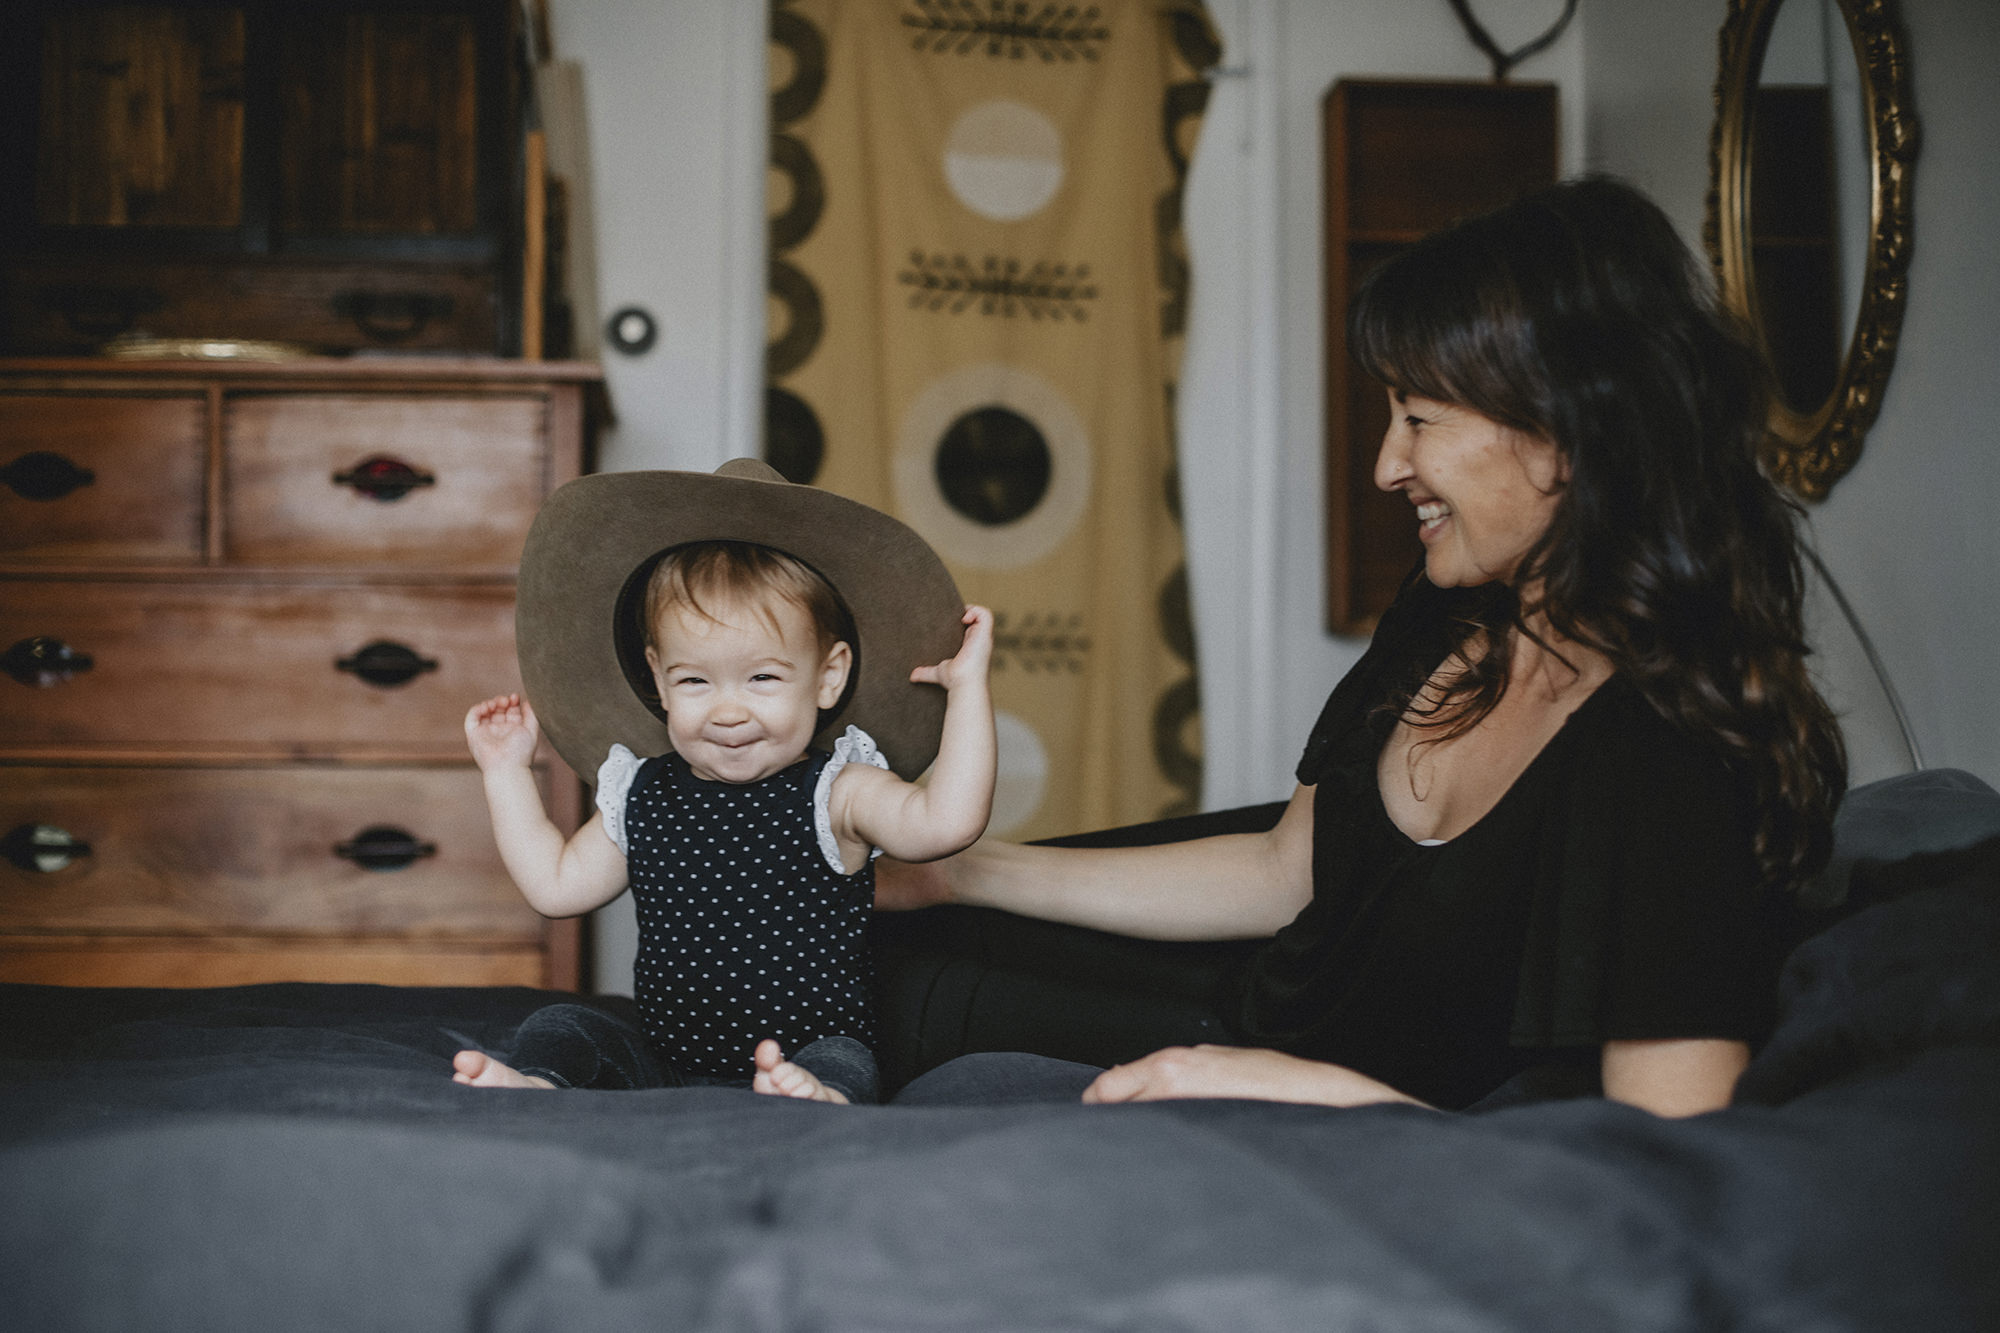 Oakland Family Photography by Becca Henry Photography